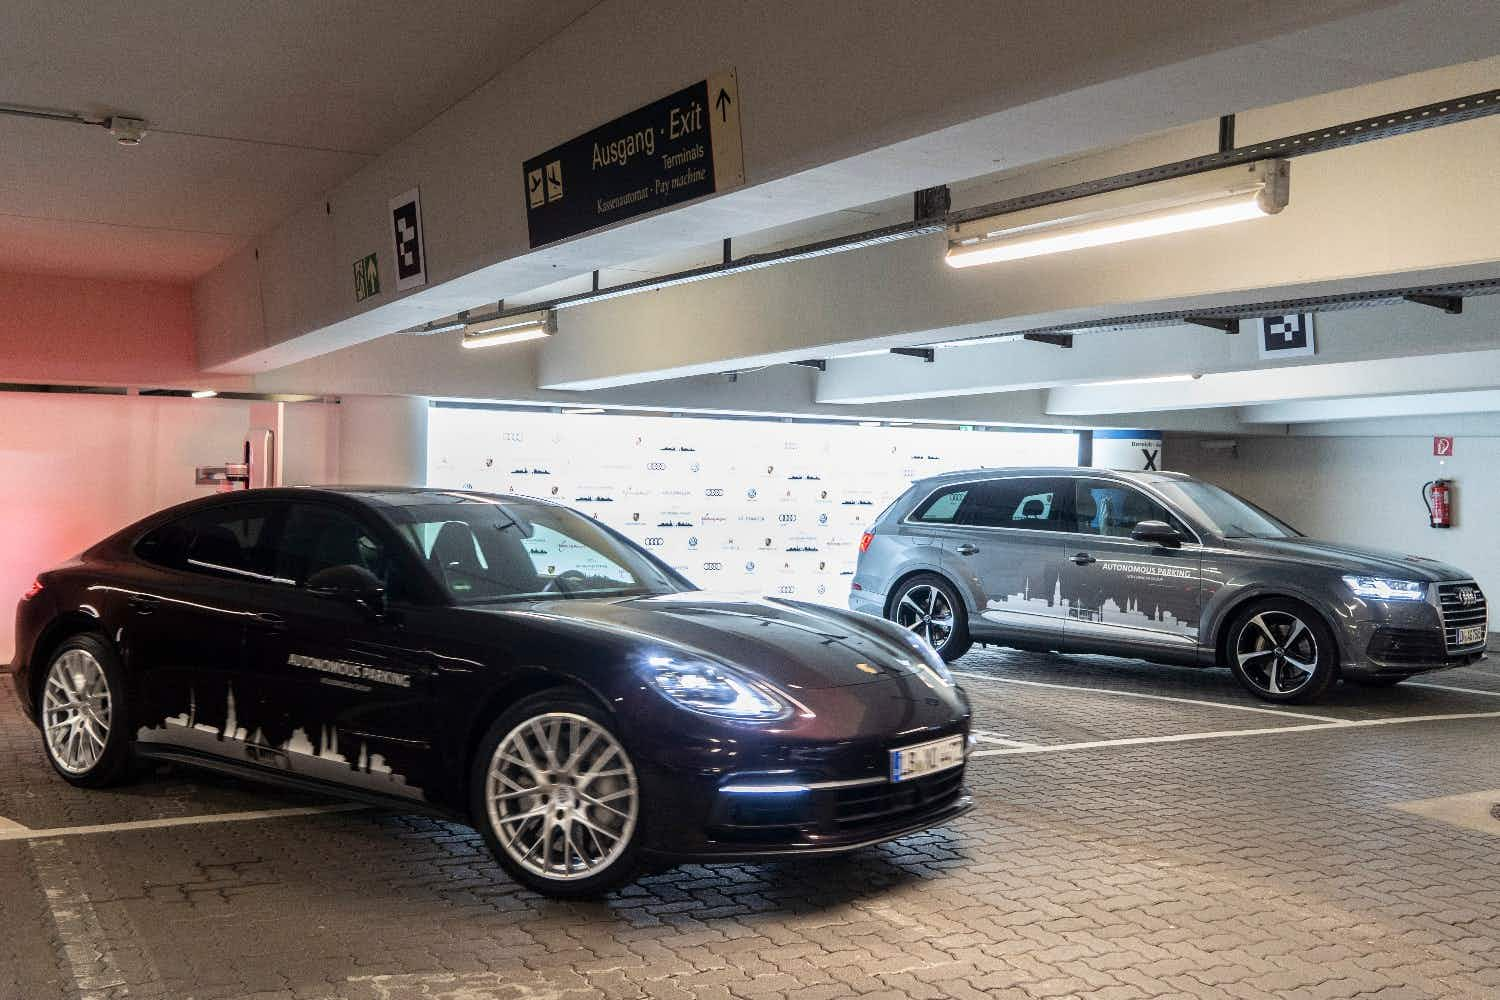 Autonomous parking at Hamburg Airport aims to take the stress out of finding a space